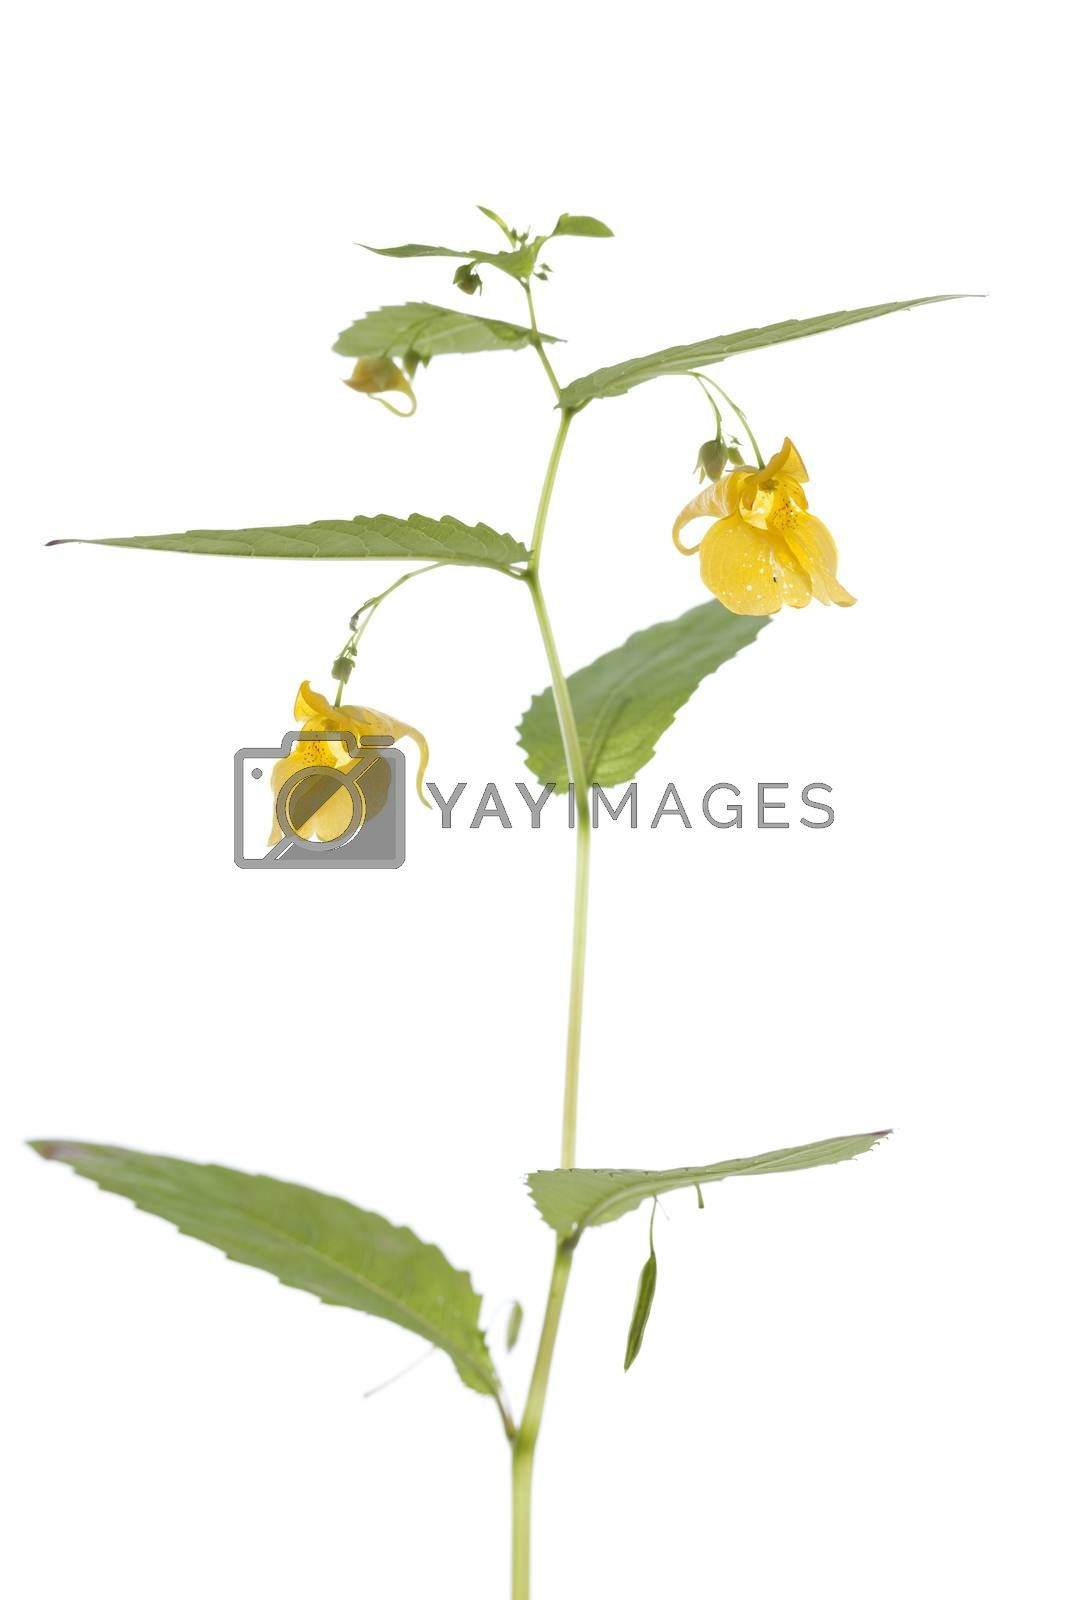 yellow flower (Impatiens noli-tangere) on white background